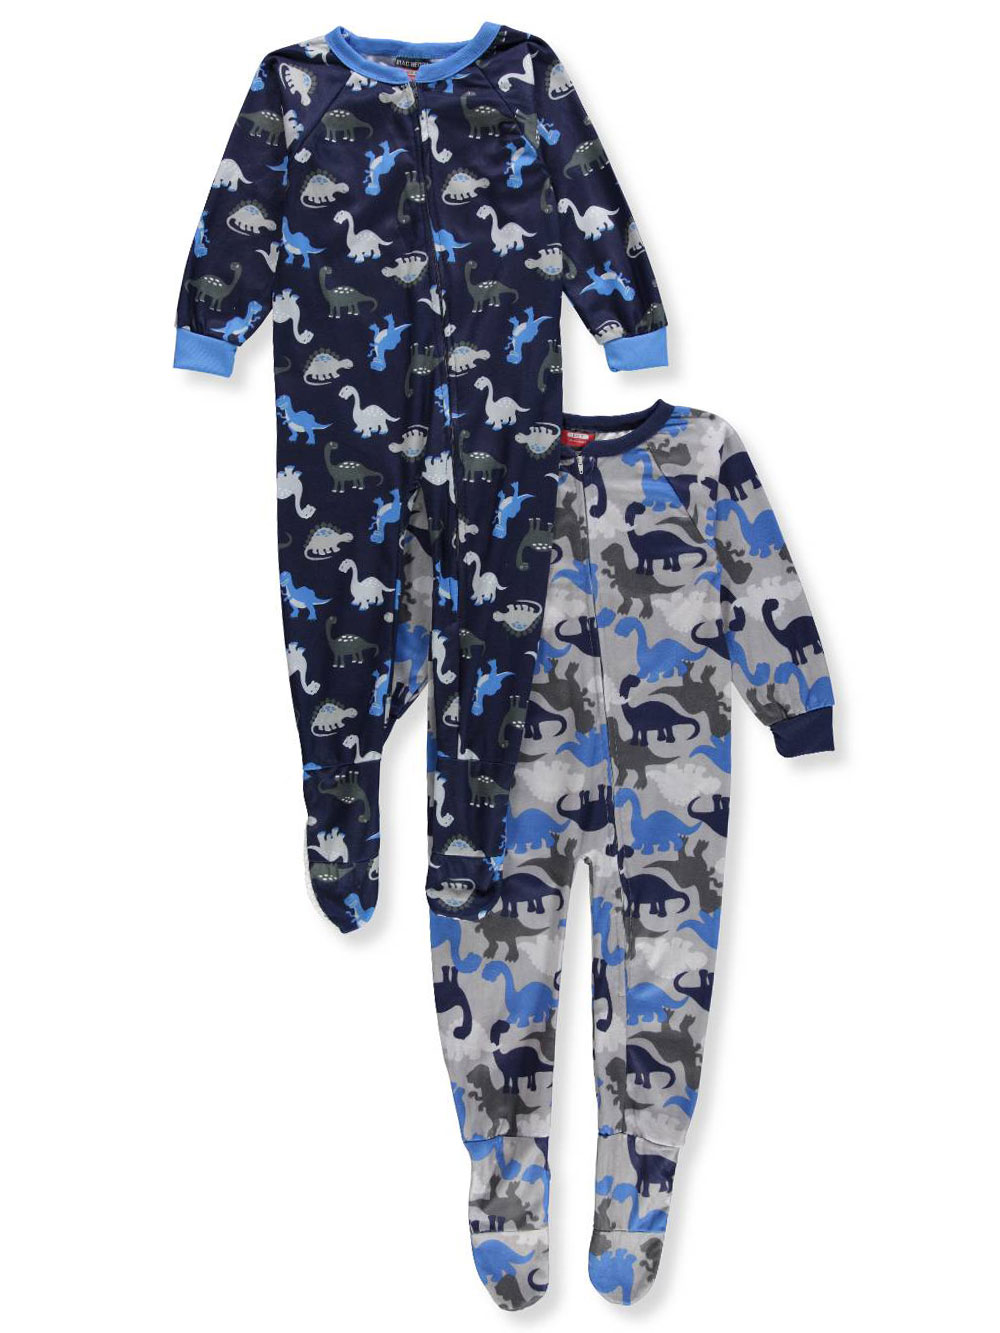 Mac Henry Boys' 2-Pack 1-Piece Footed Pajamas